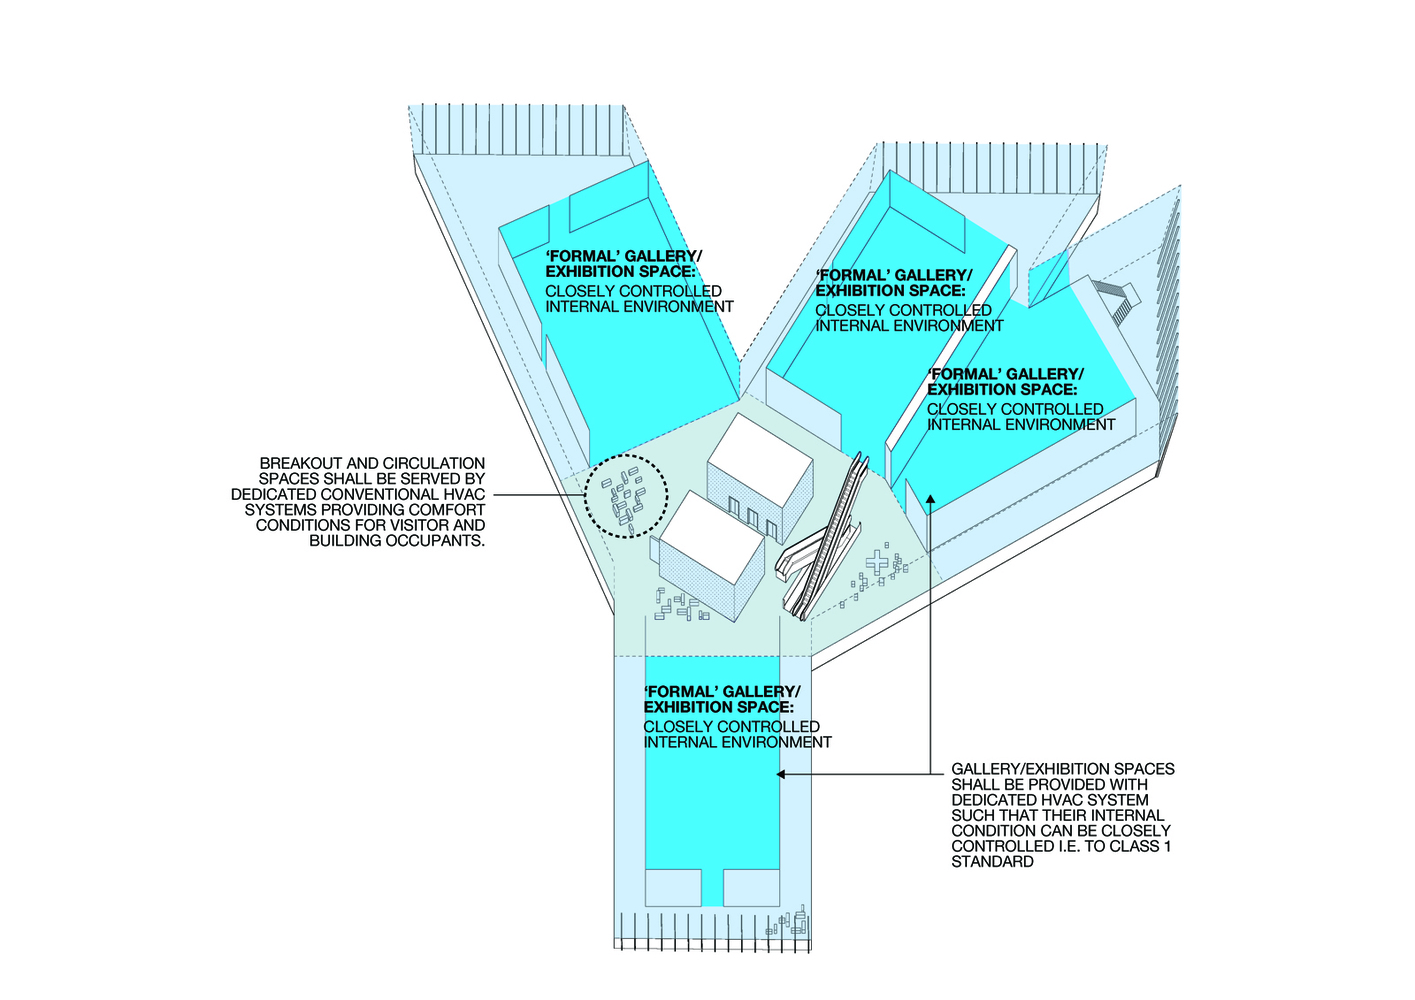 hight resolution of new taipei city museum of art proposal lyons hvac gallery compartments diagram